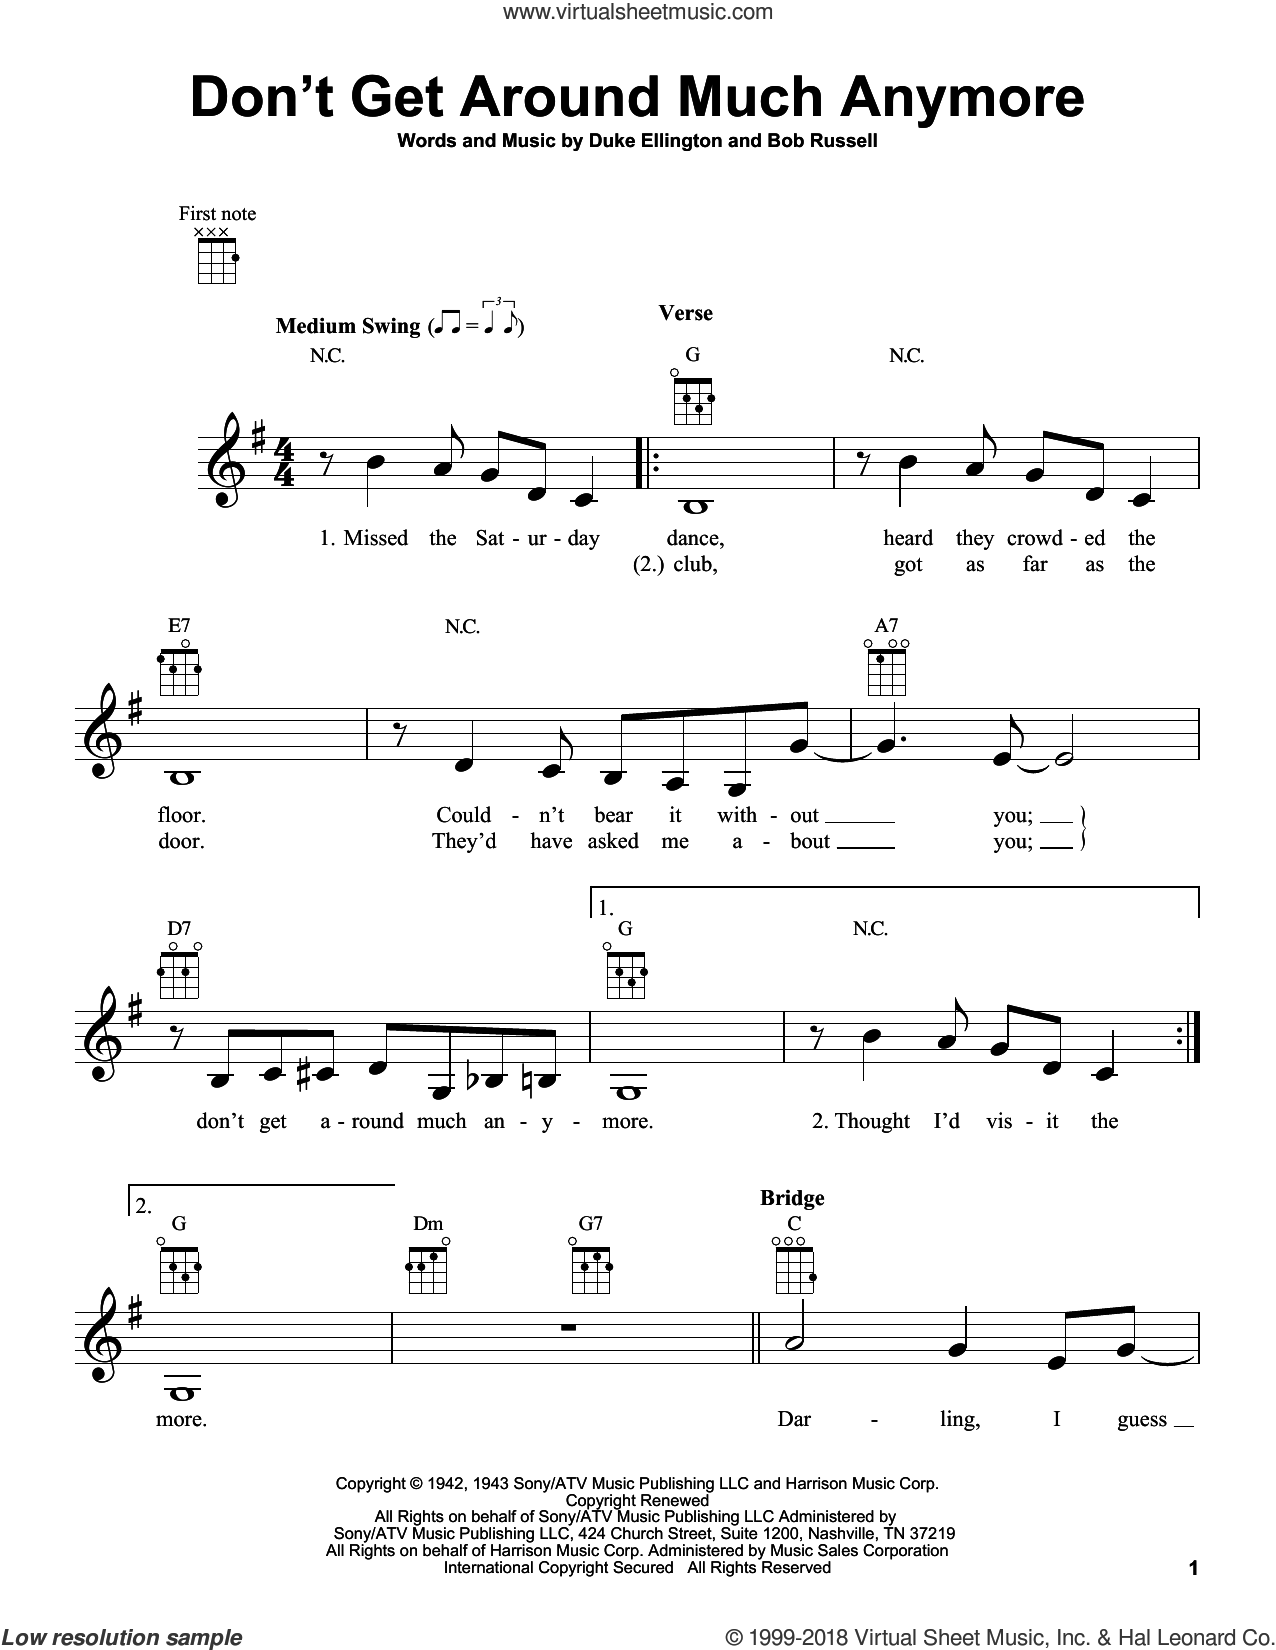 Don't Get Around Much Anymore sheet music for ukulele by Duke Ellington and Bob Russell, intermediate skill level